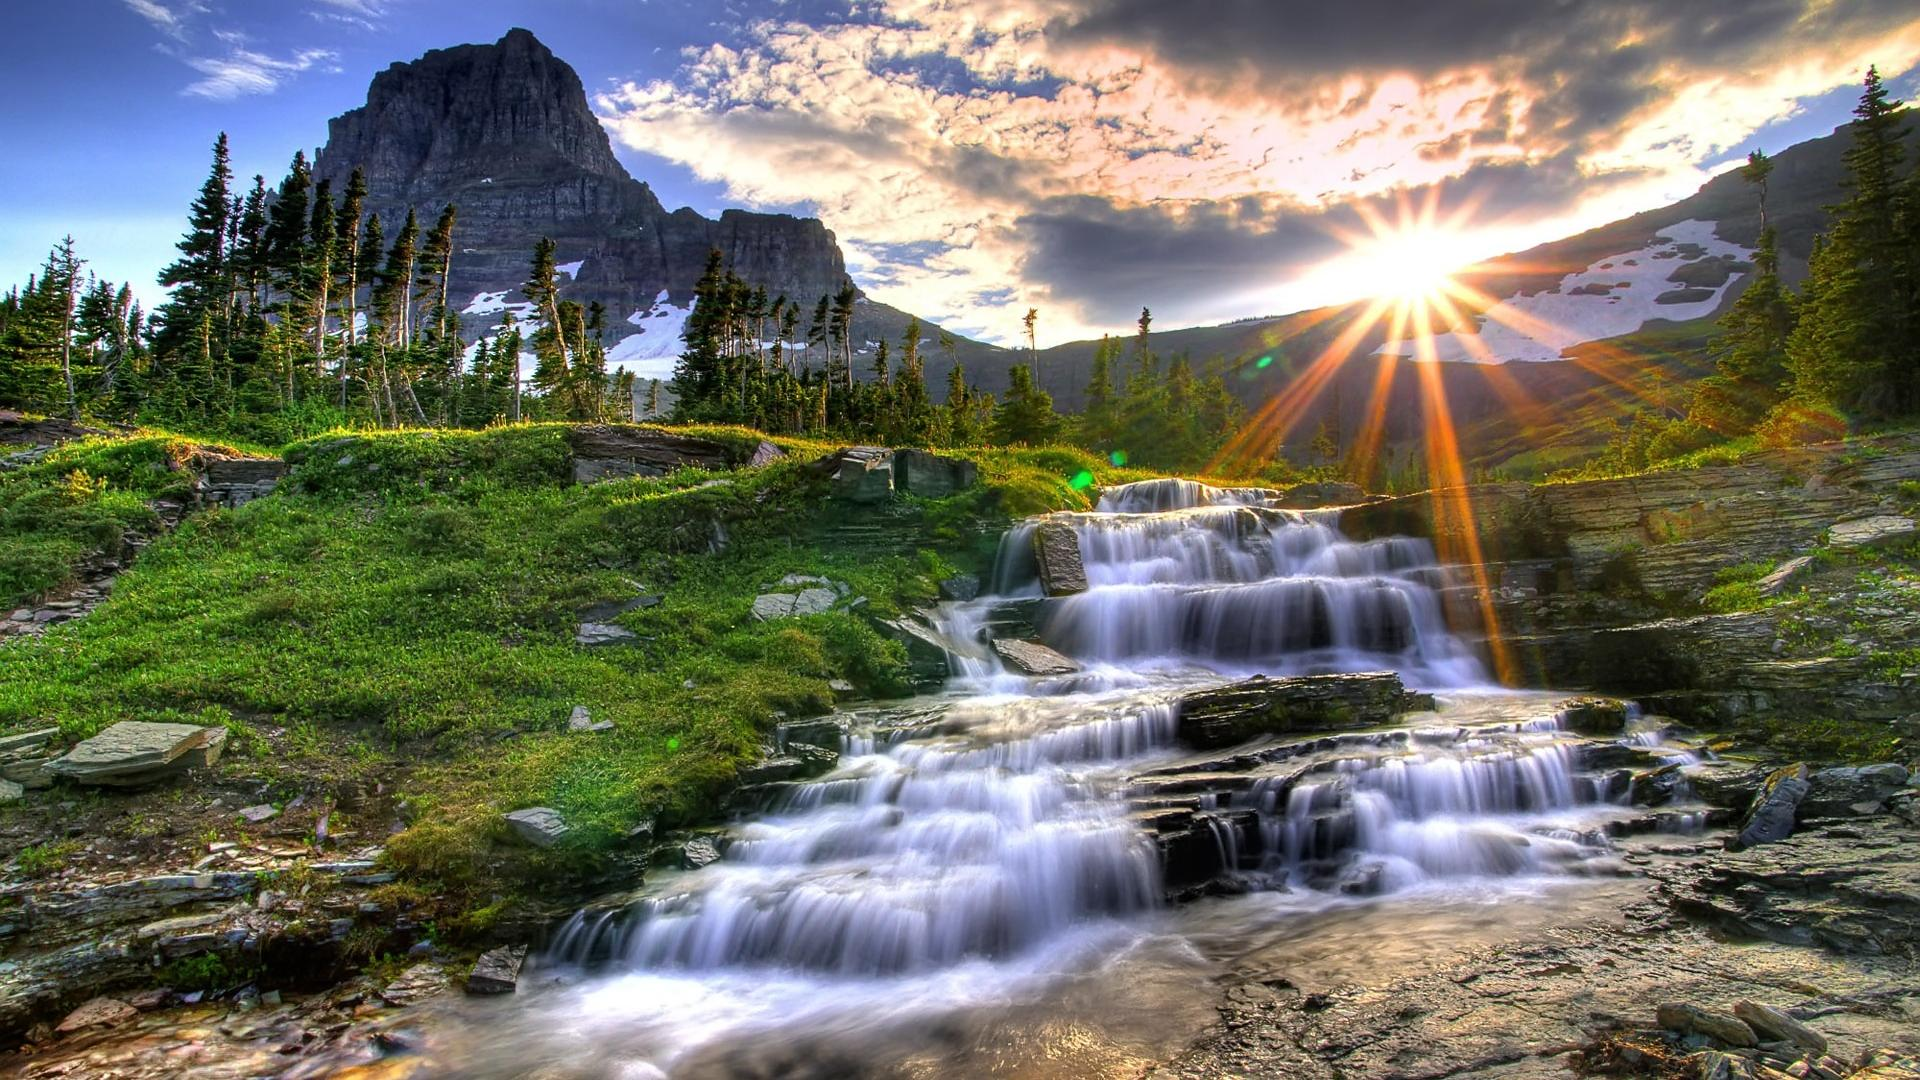 Nature images beautiful cool wallpapers - Beautiful Landscape Nature Desktop Walpapers Best Background Nature